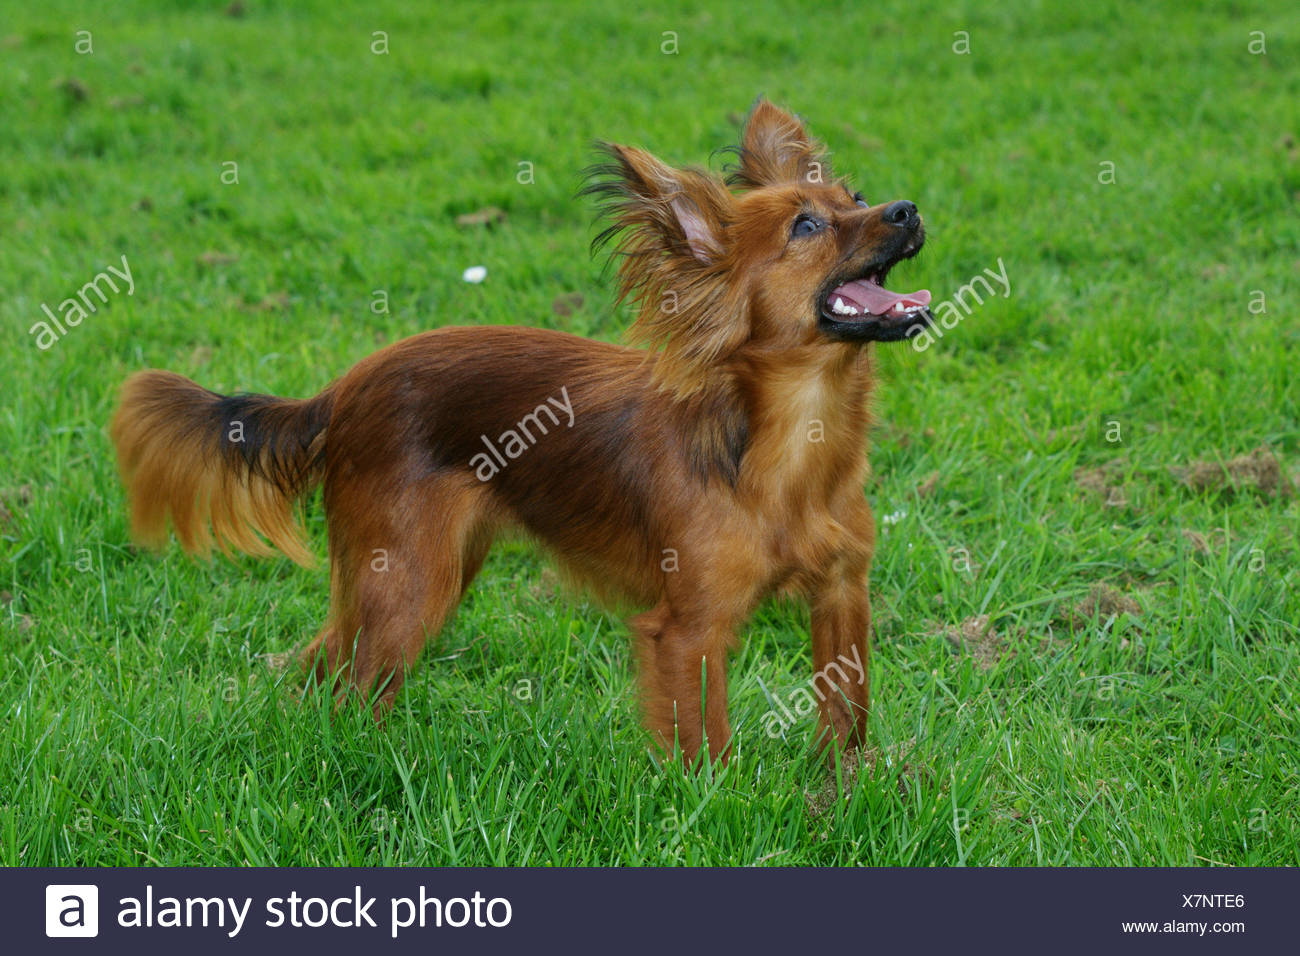 Russkiy Toy, Russian Toy (Canis lupus f. familiaris), longhaired Russkiy Toy standing in a meadow Stock Photo